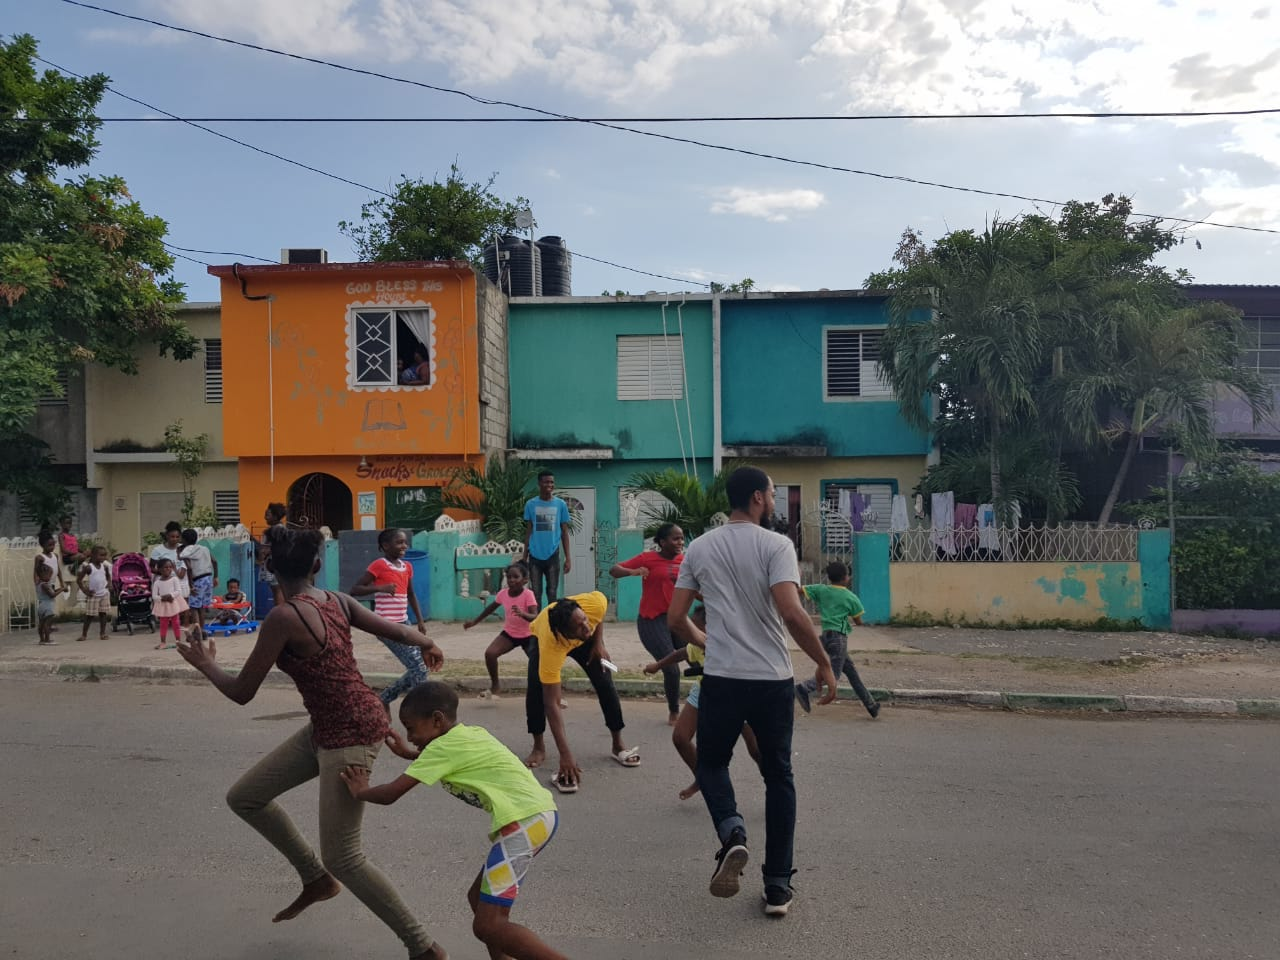 Photograph of a Street Play JA session taking place in downtown Kingston.